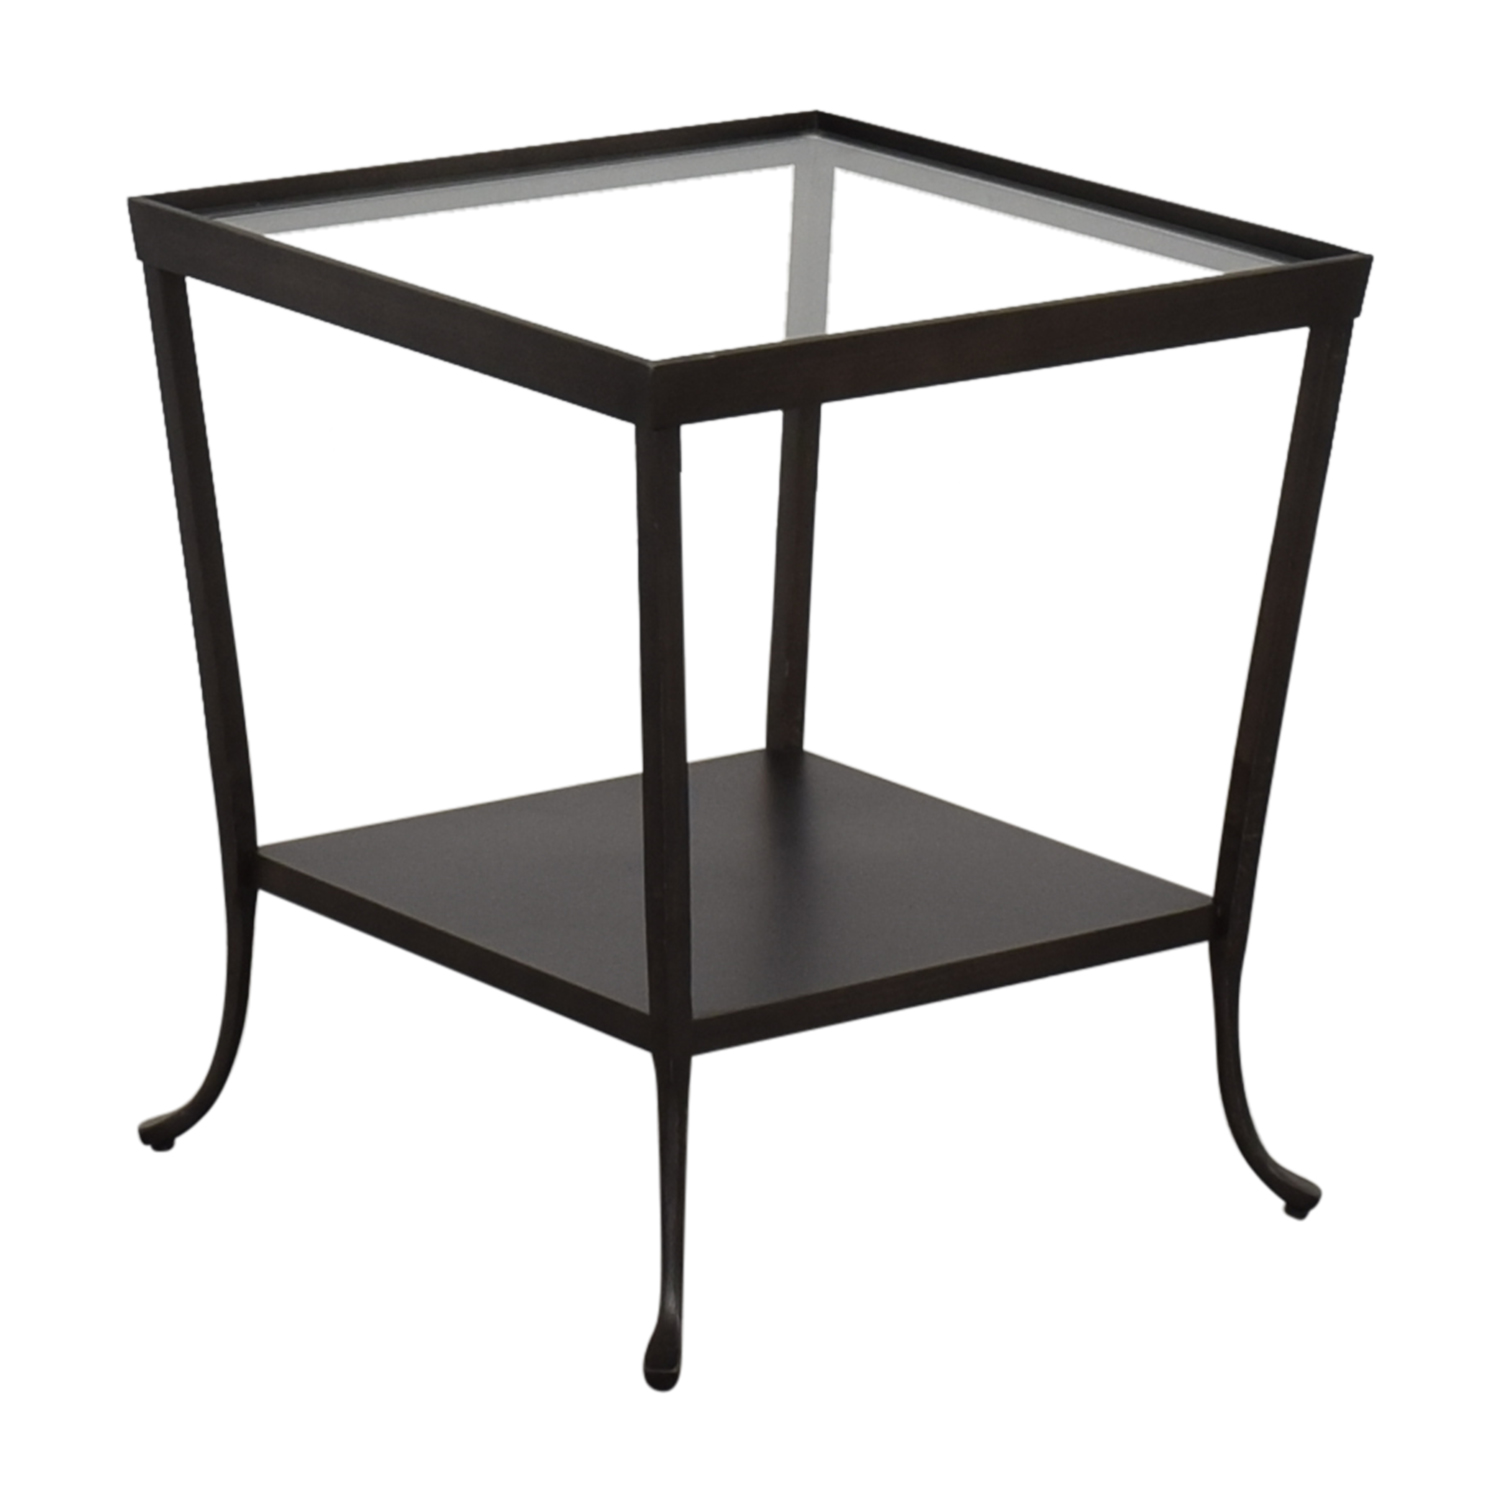 Crate & Barrel Crate & Barrel Side Table clear and black